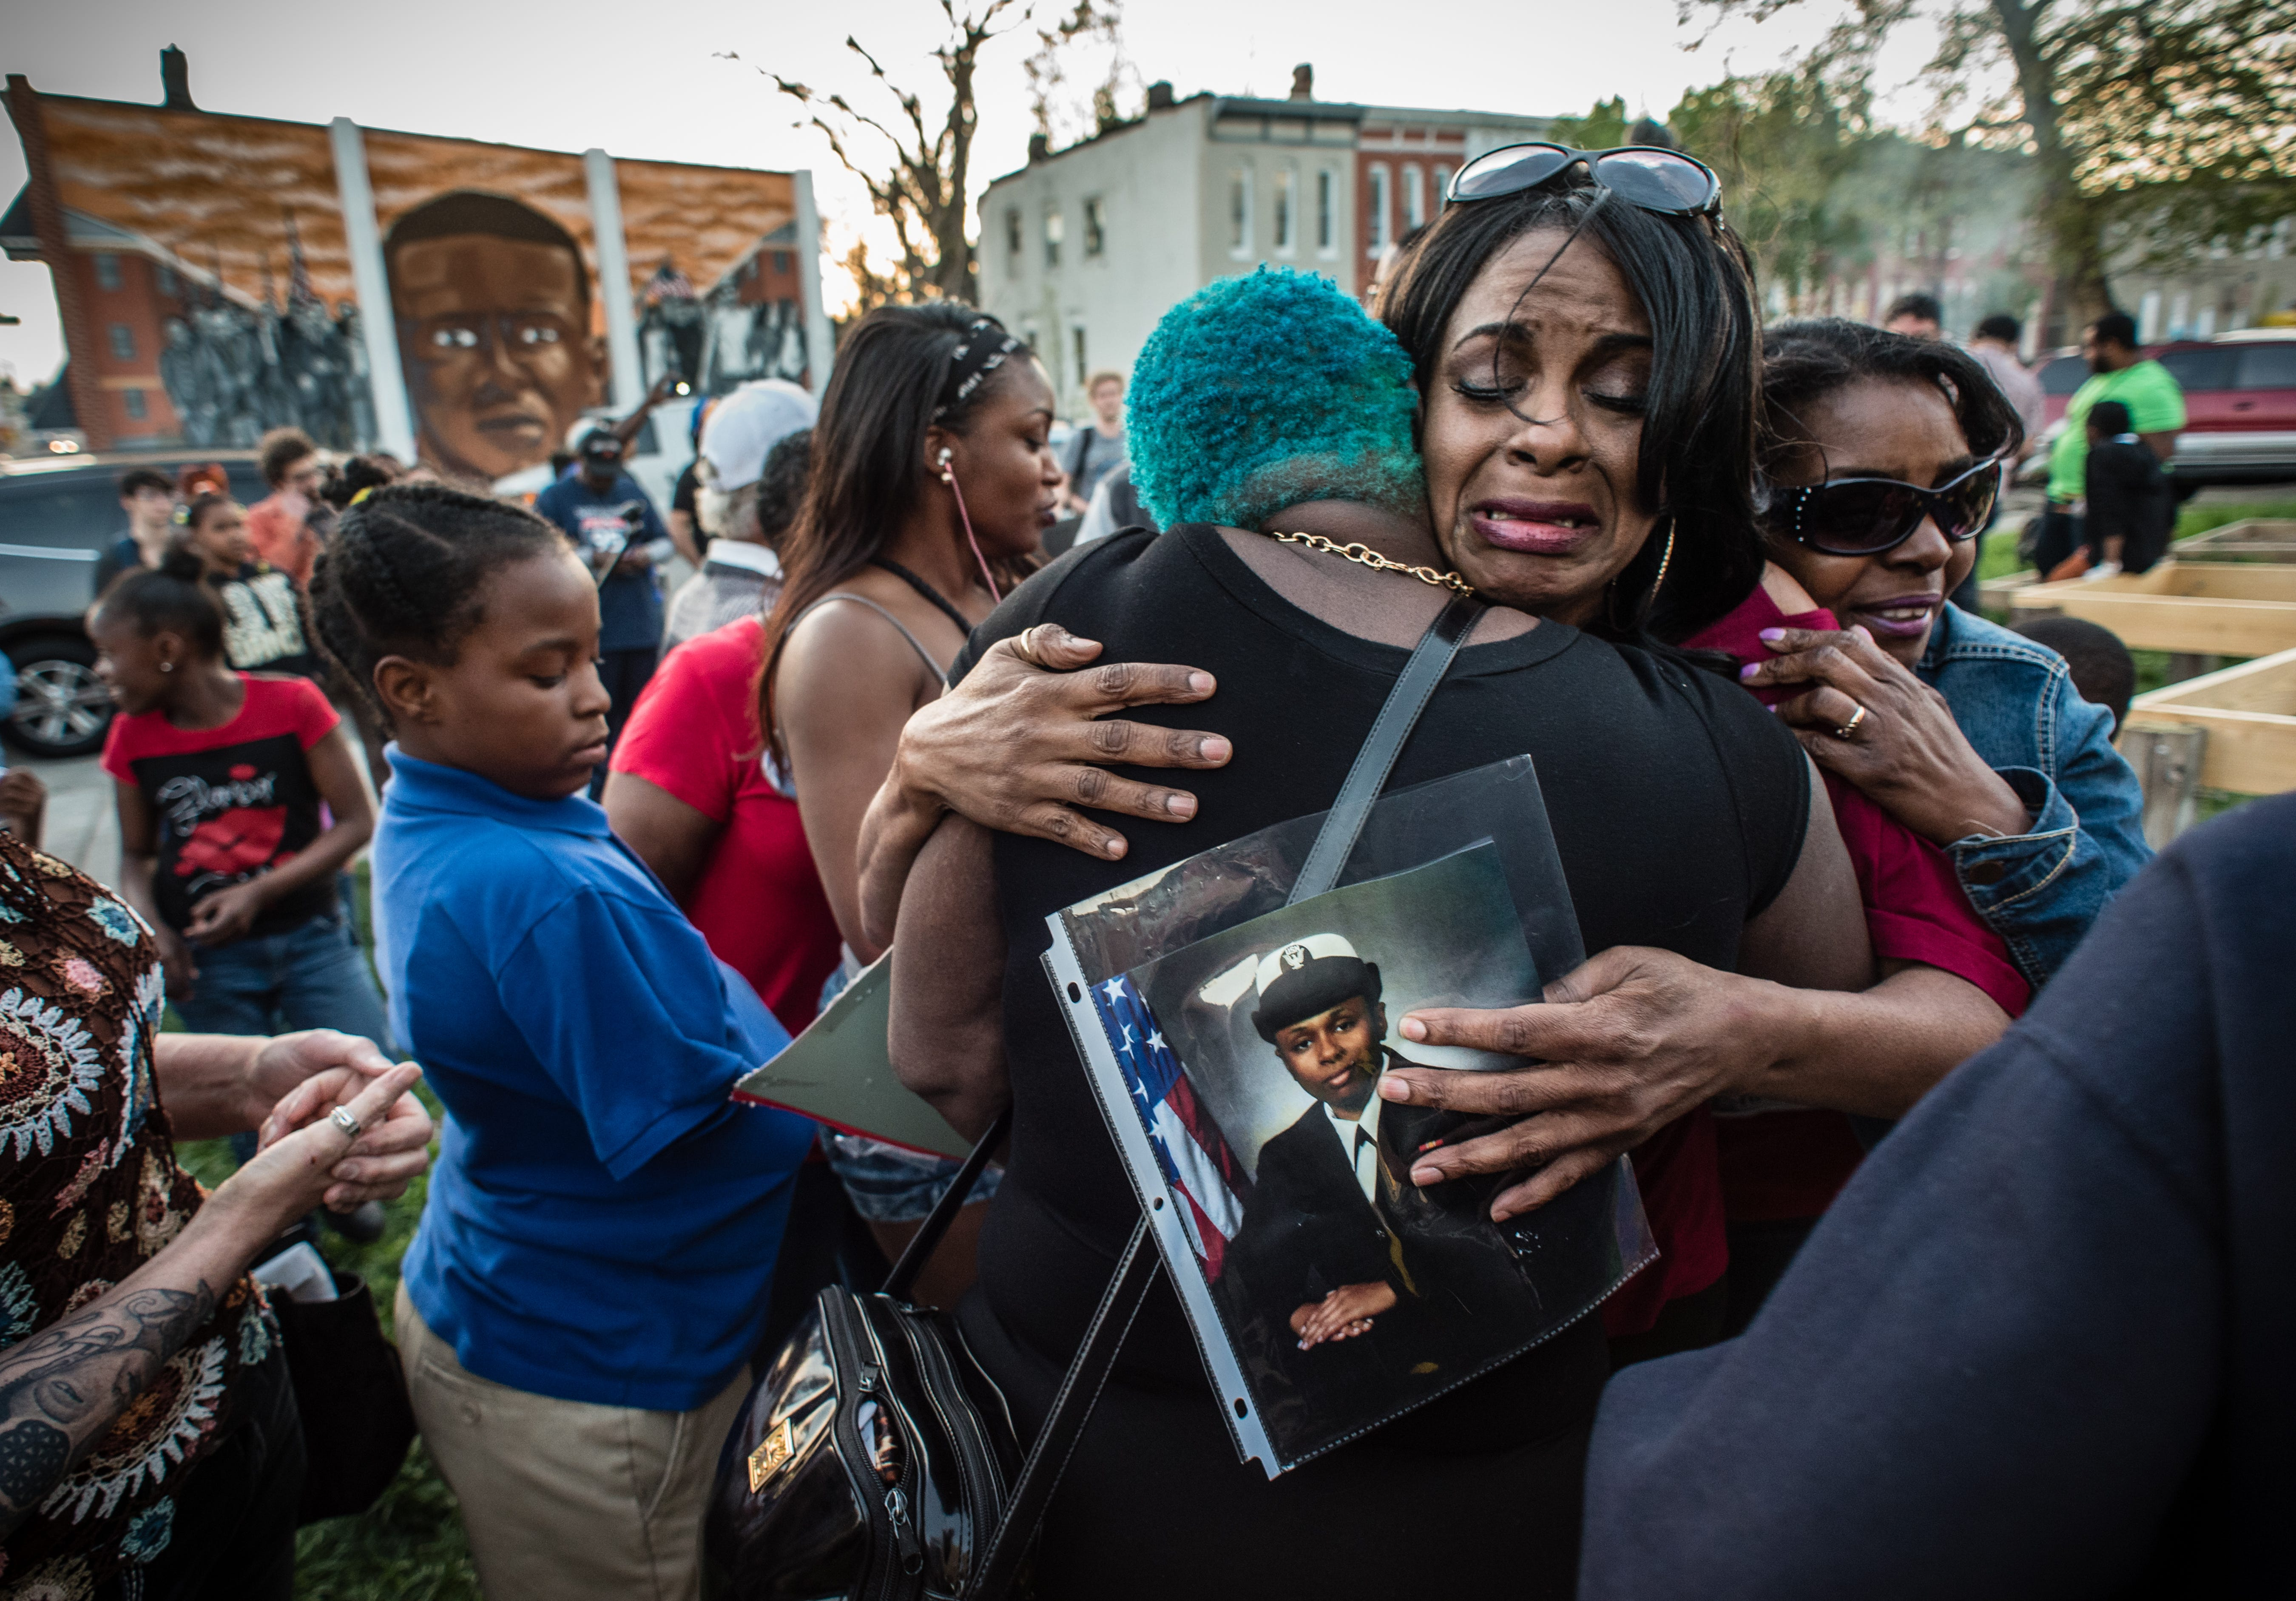 Activist Gina Best, weeps after speaking to an assembly on April 19, 2016 in Baltimore about her daughter, India Kager, who was killed by police in Virginia Beach. She's embraced by friends, supporters and residents after her emotional testimony.